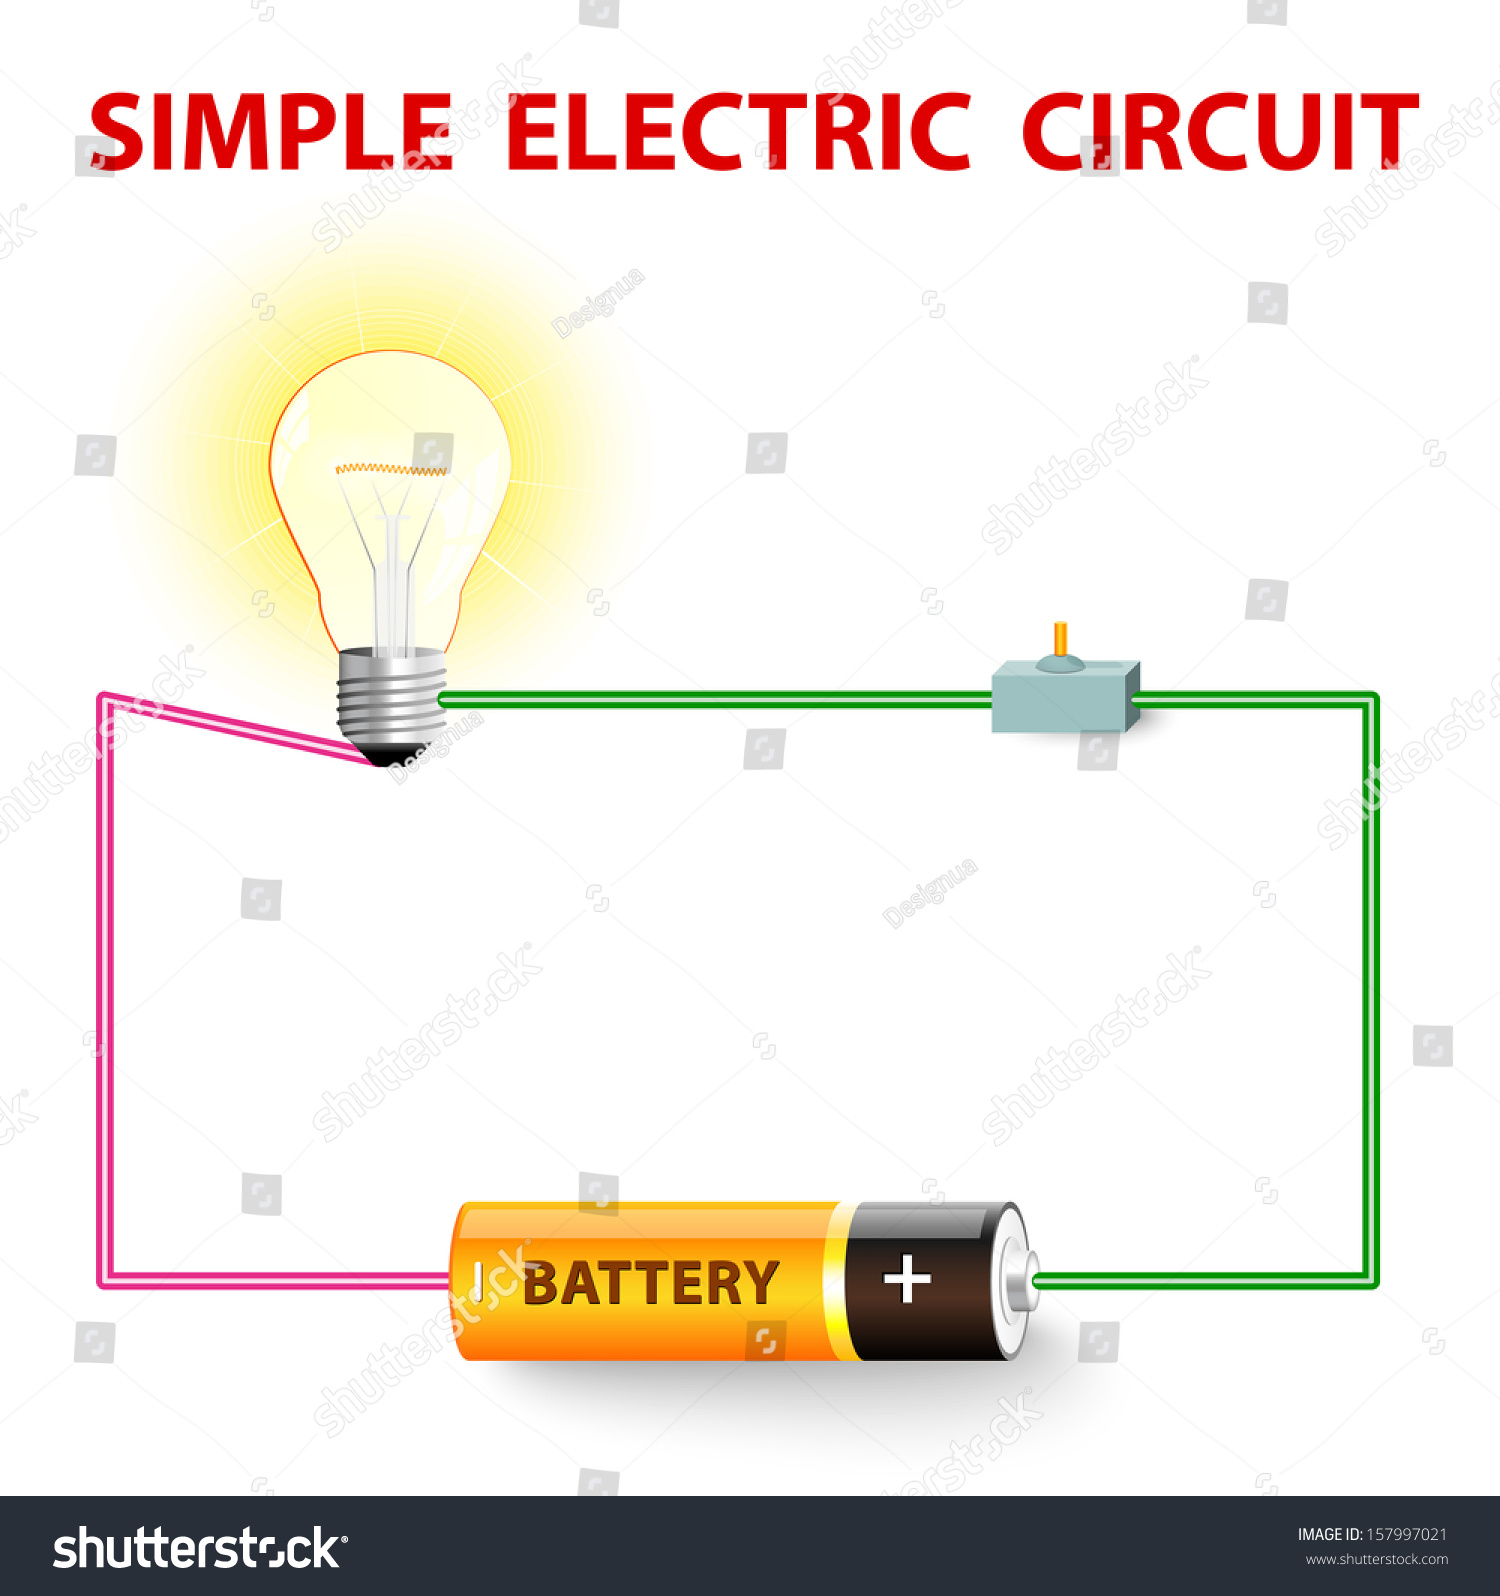 simple electric circuit electrical network switch stock vector a simple electric circuit electrical network switch light bulb wire and battery